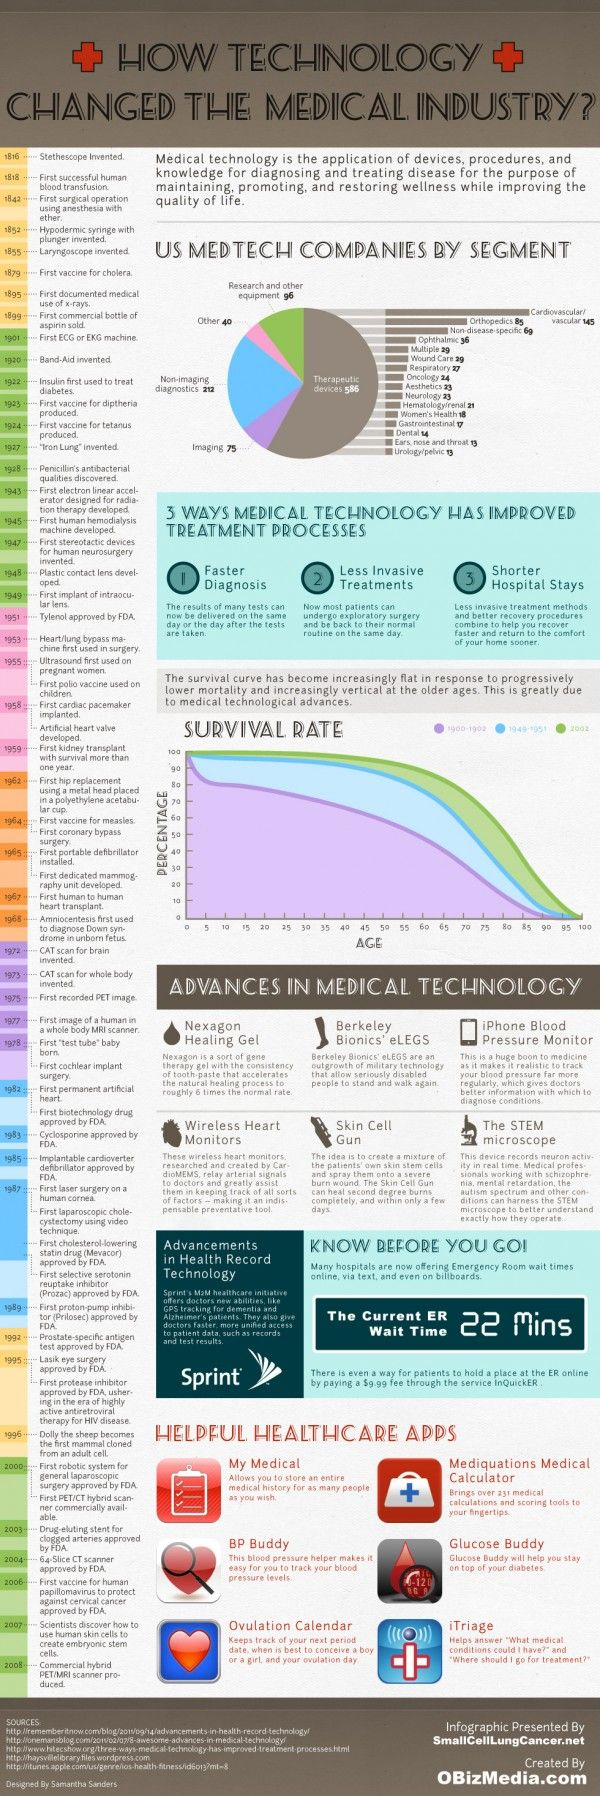 How technology changed medical industry?        #health #tech #infographic